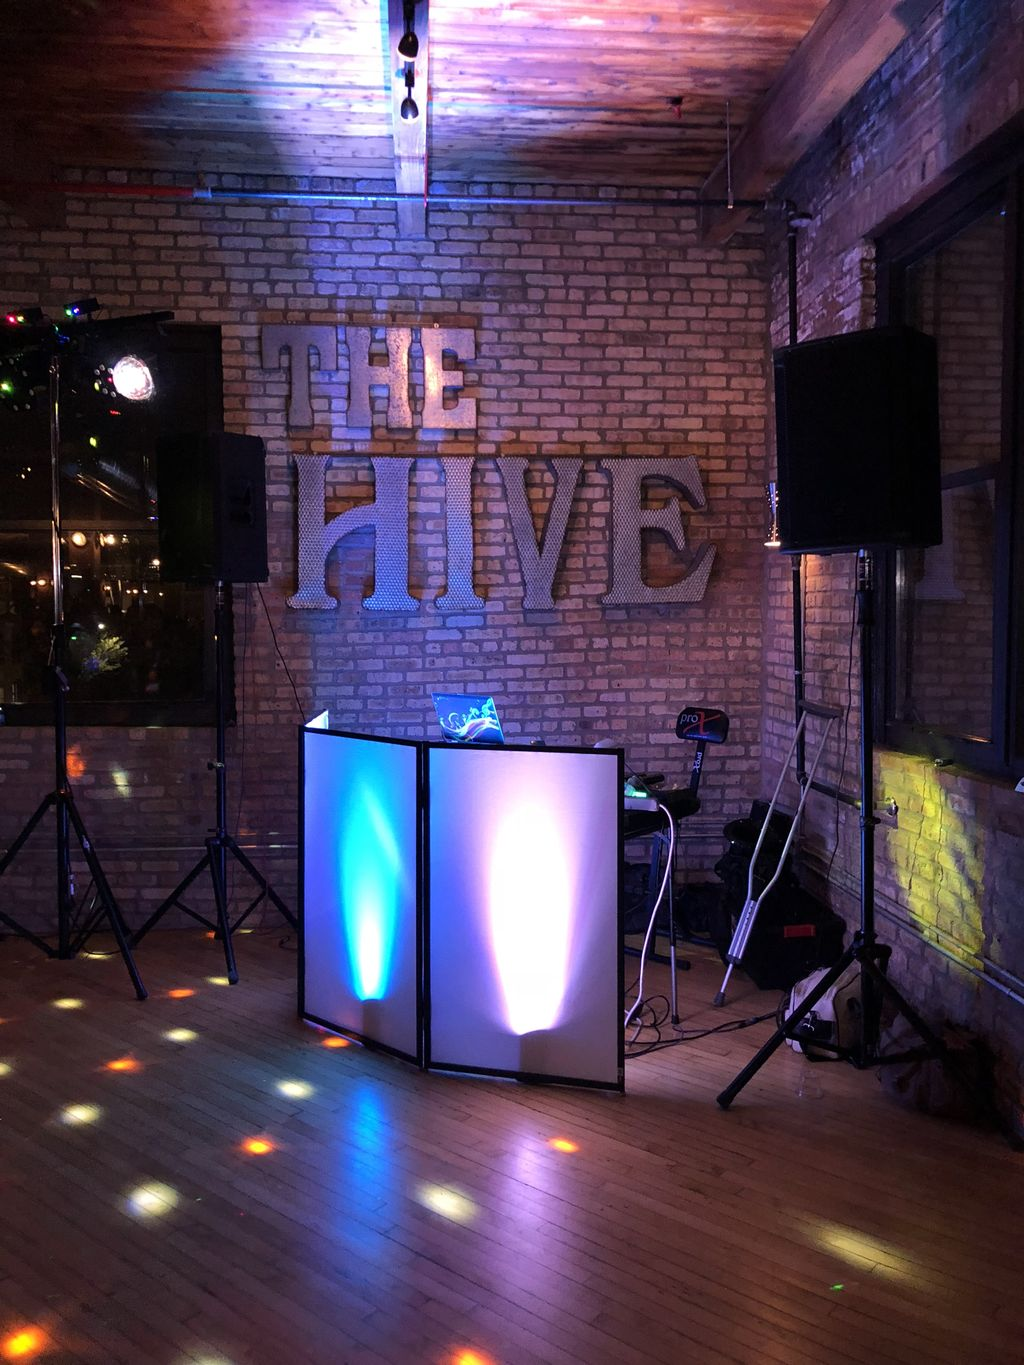 Dj and Photo Booth inside venue